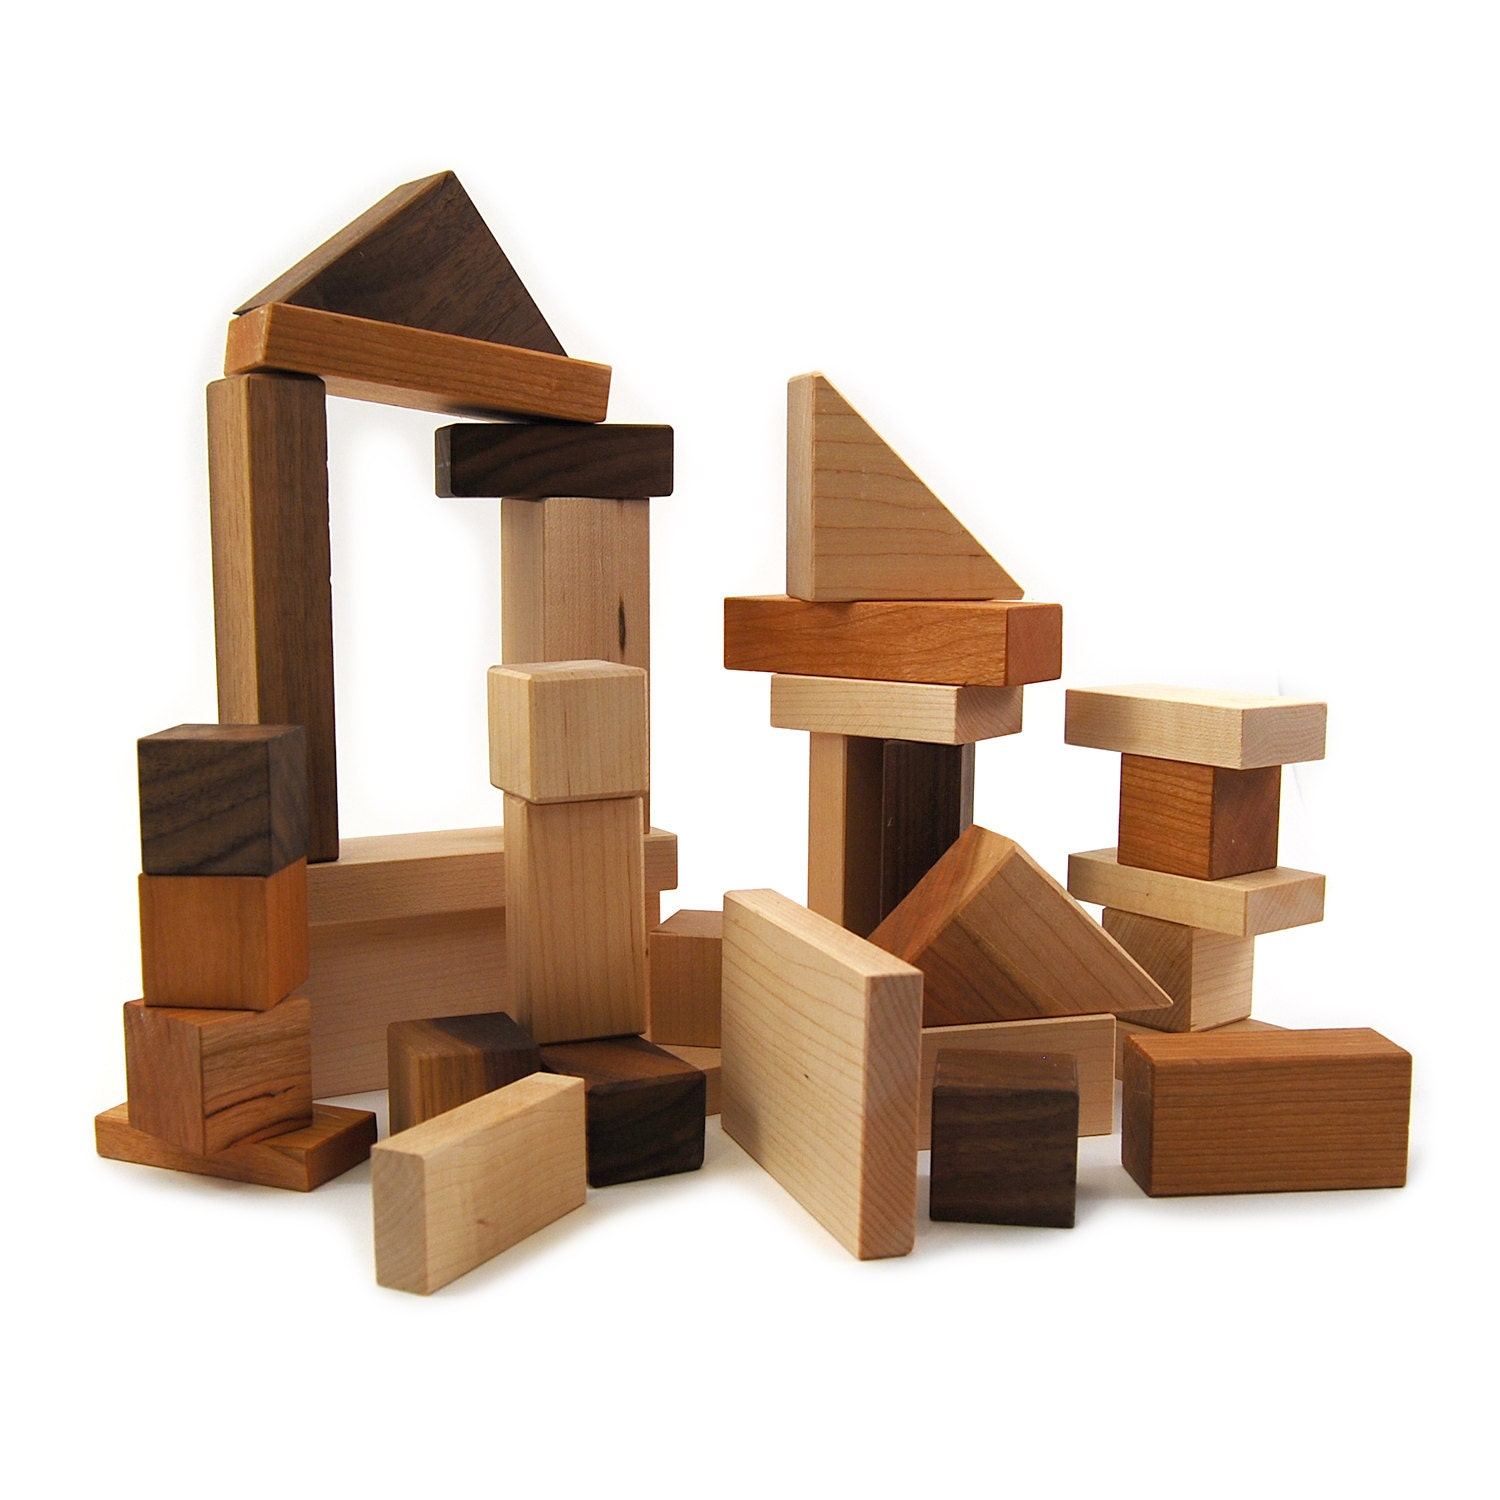 Amazing Wooden Building Blocks for toddlers Pictures